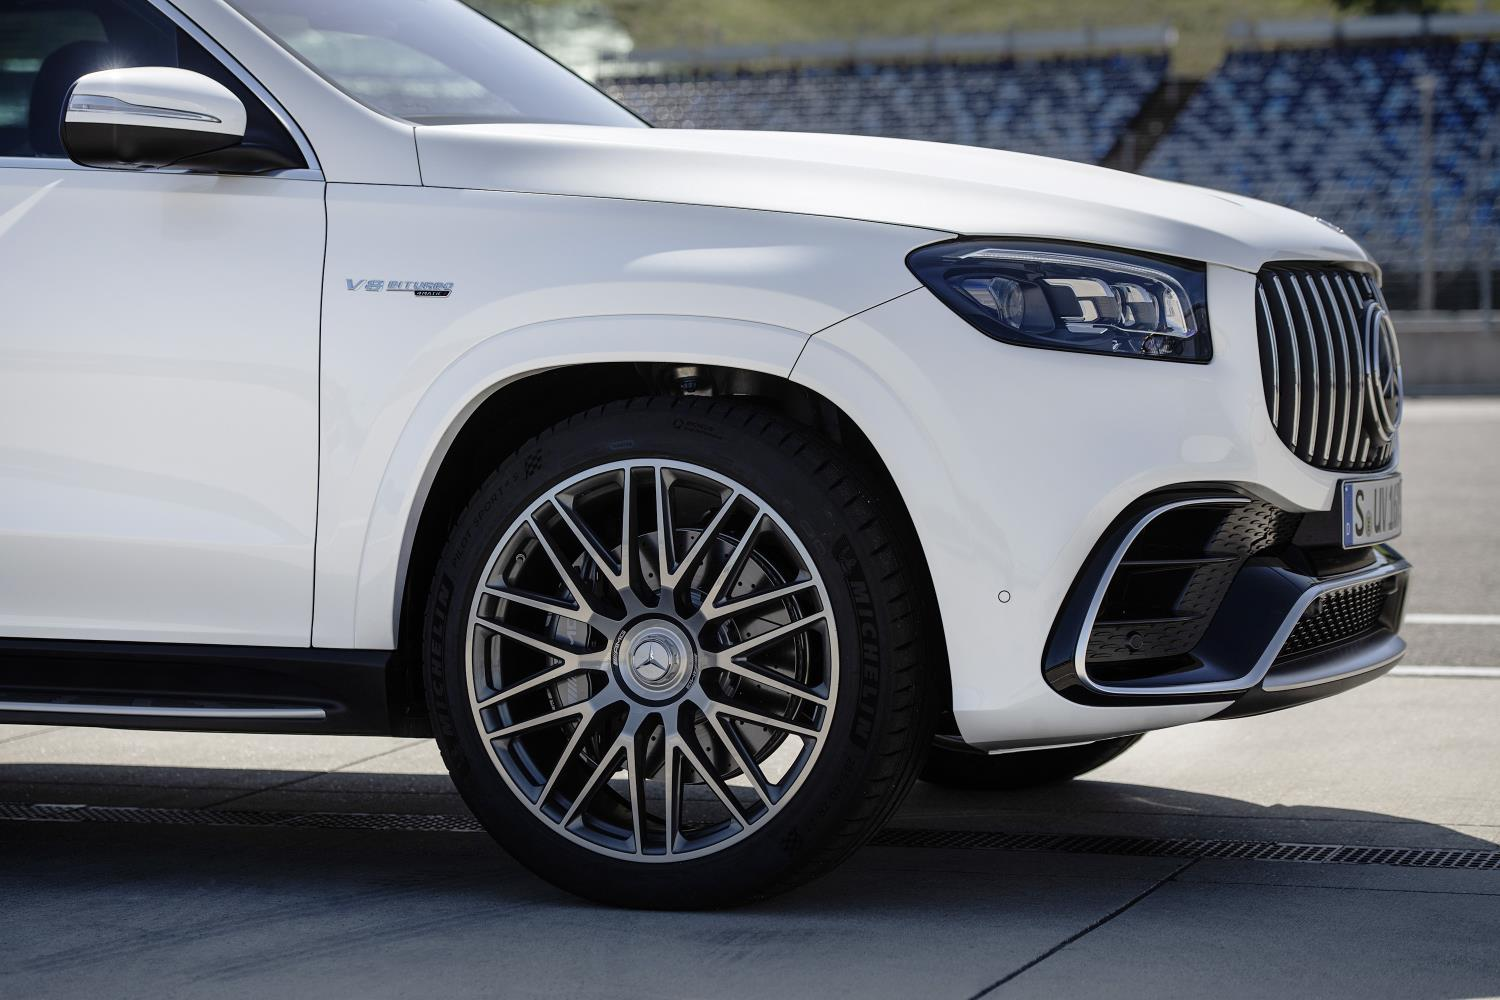 Mercedes-AMG GLS 63 S Wheels